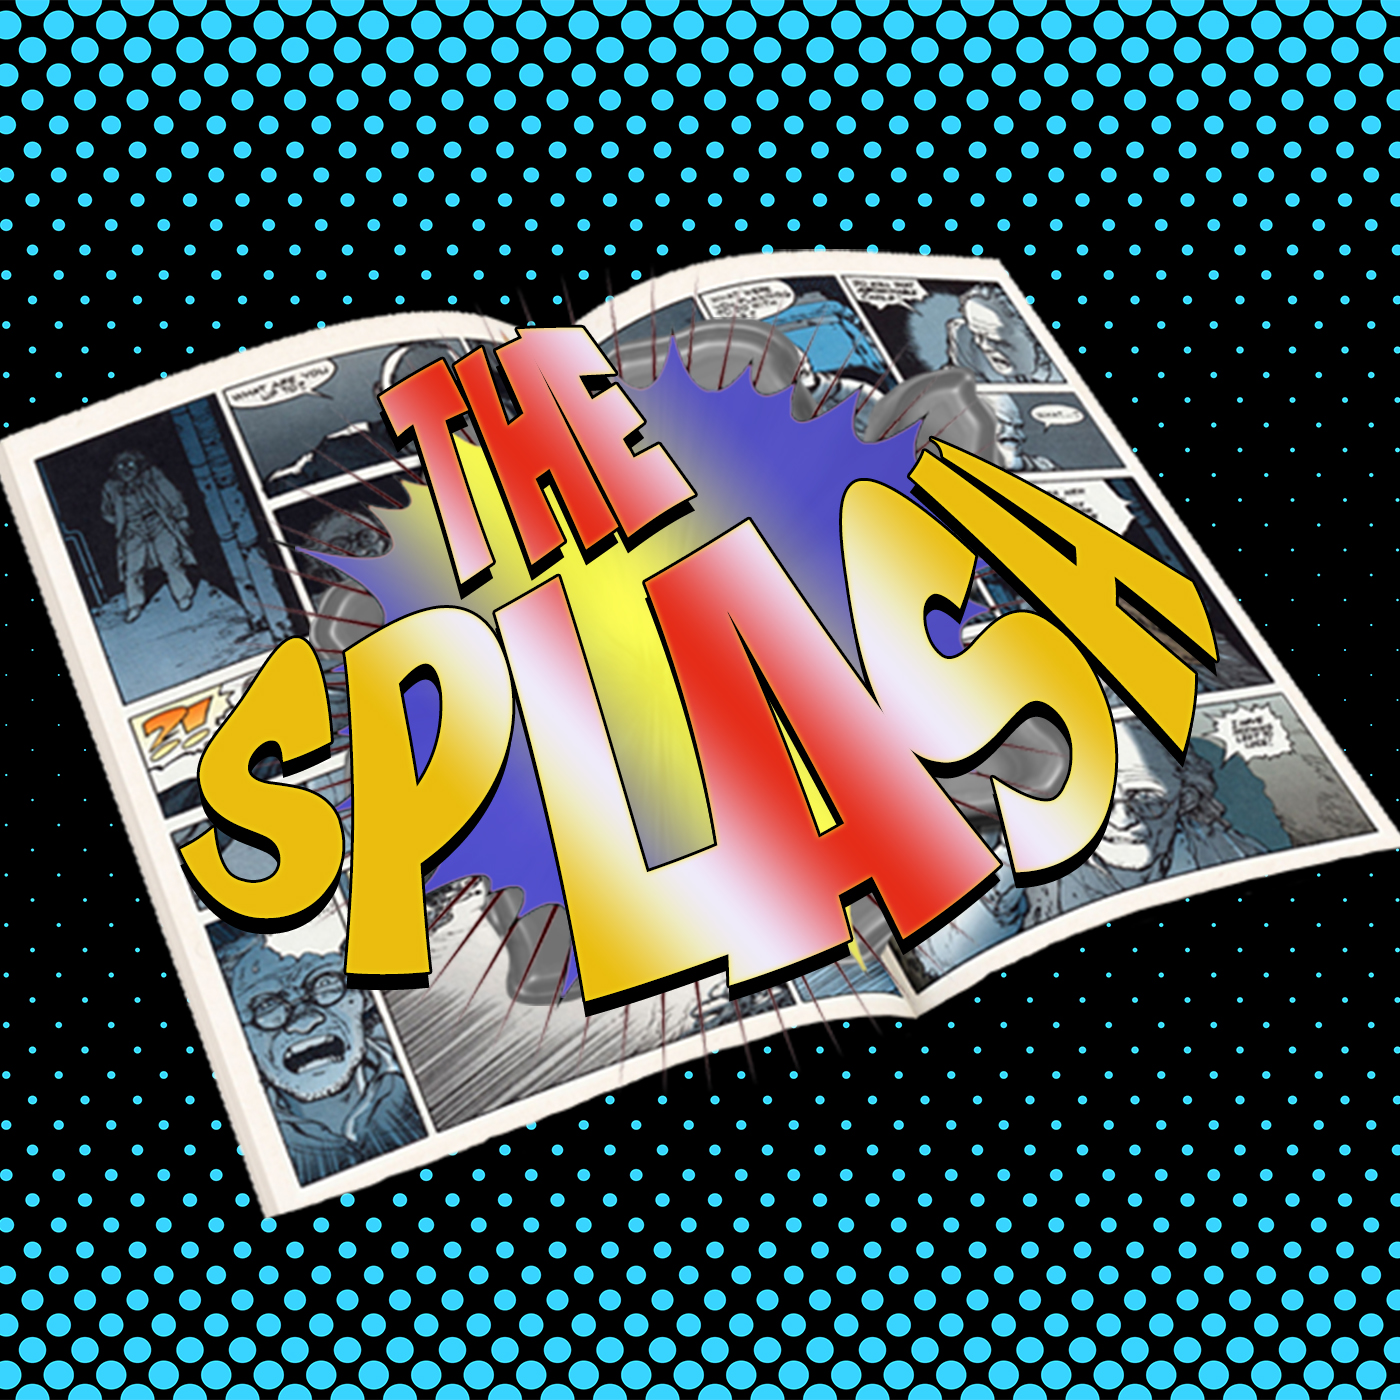 Splash  3.18 podcast icon.jpg